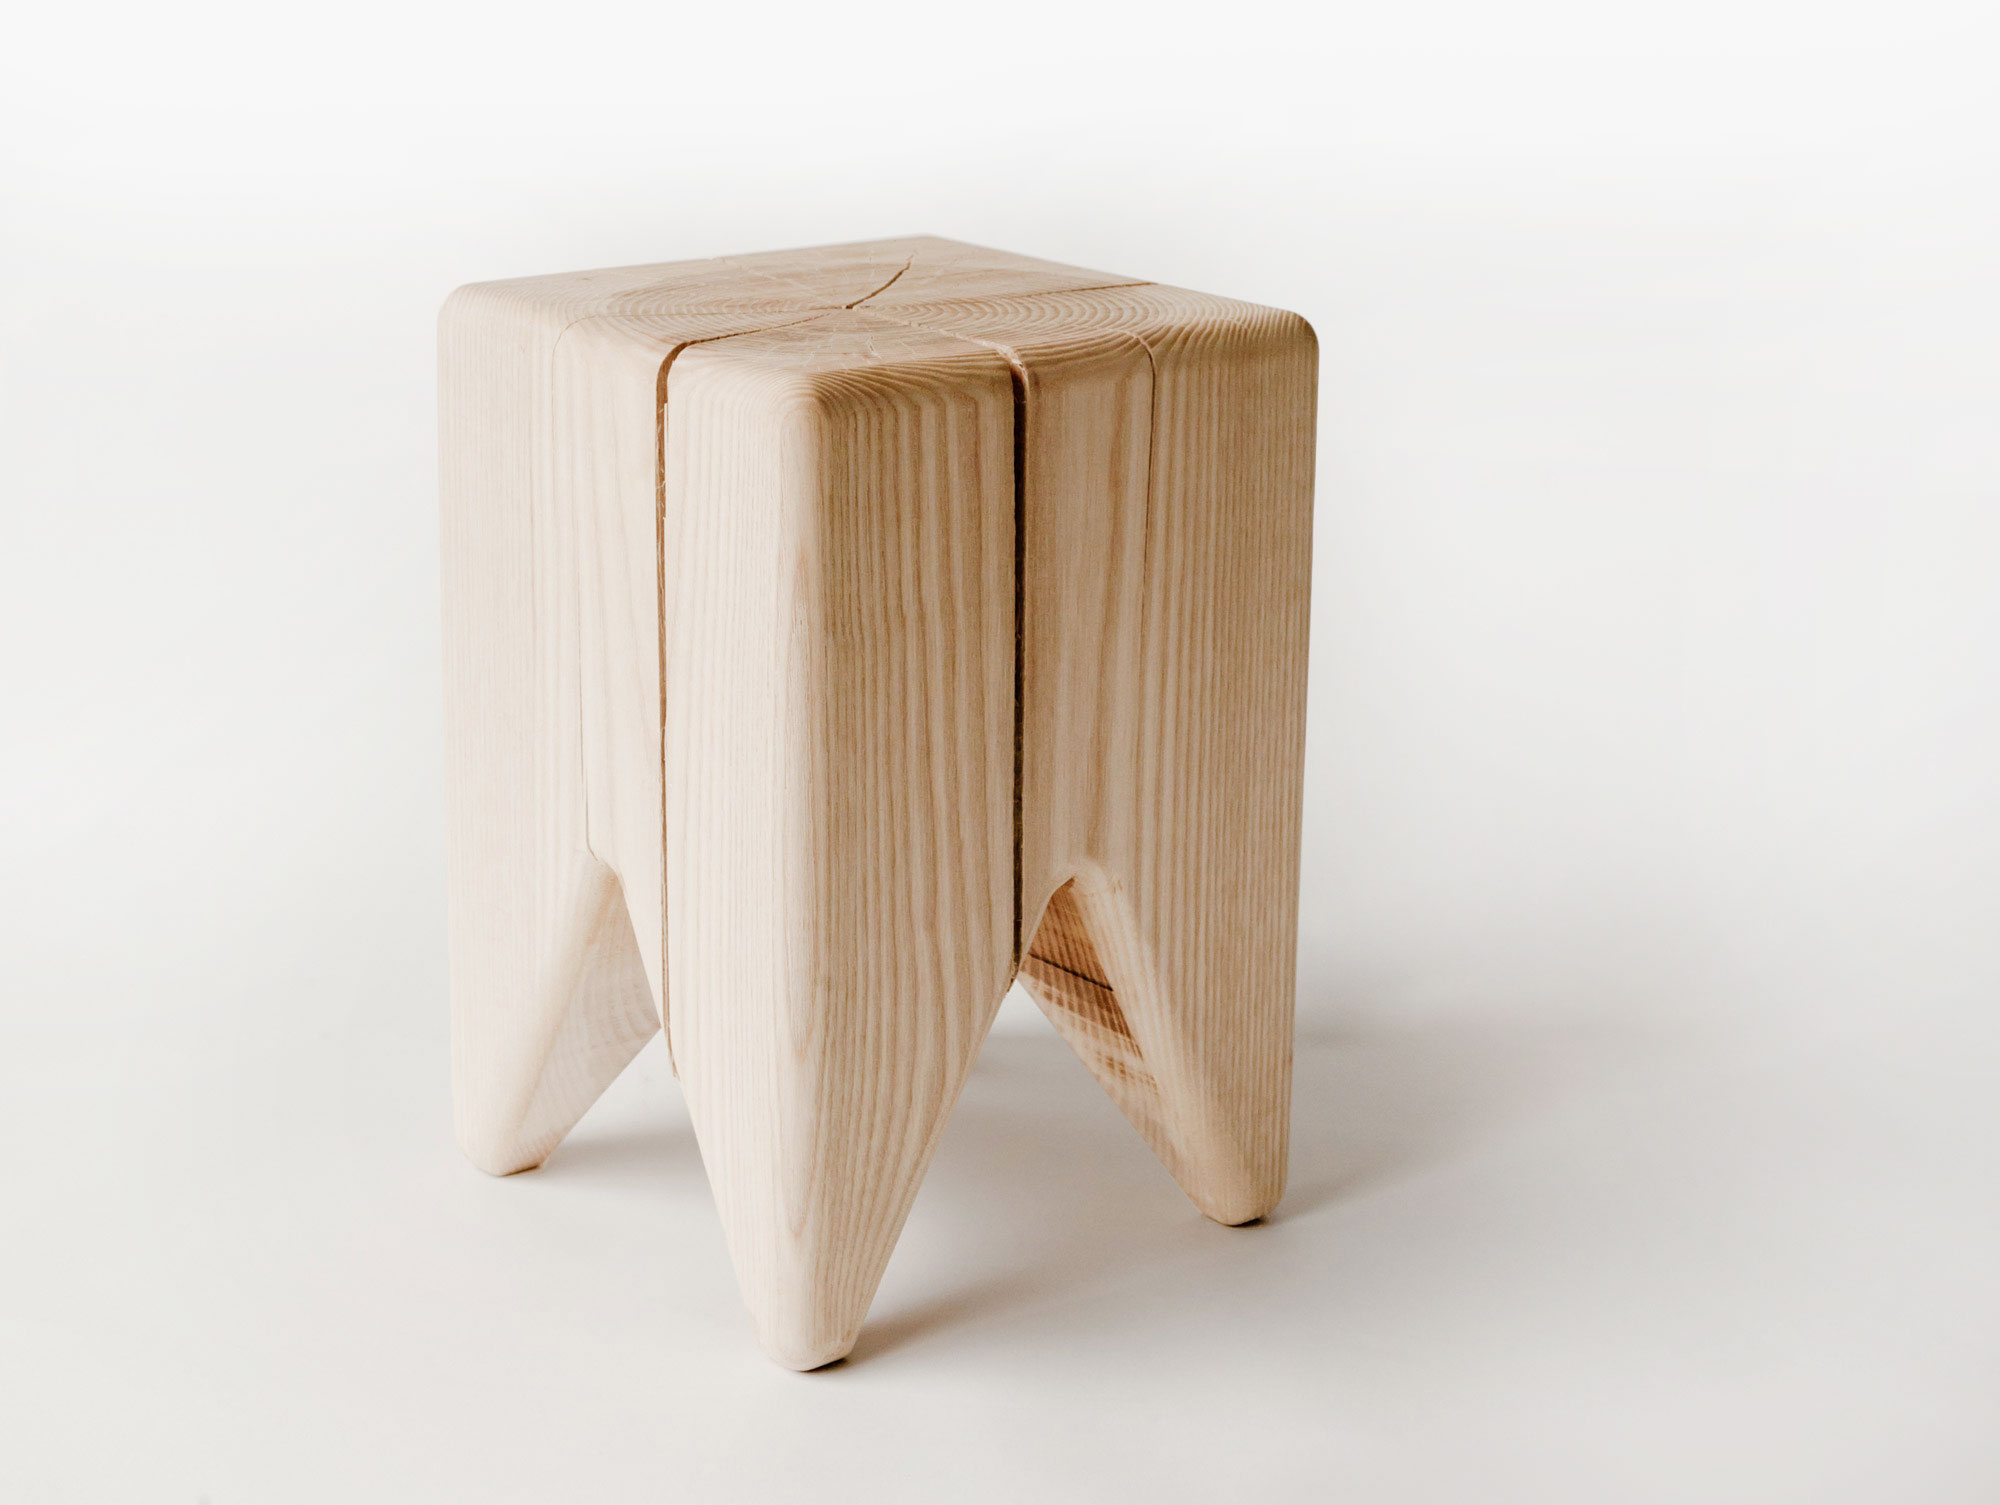 Stump Stool In Raw Ash Or Maple